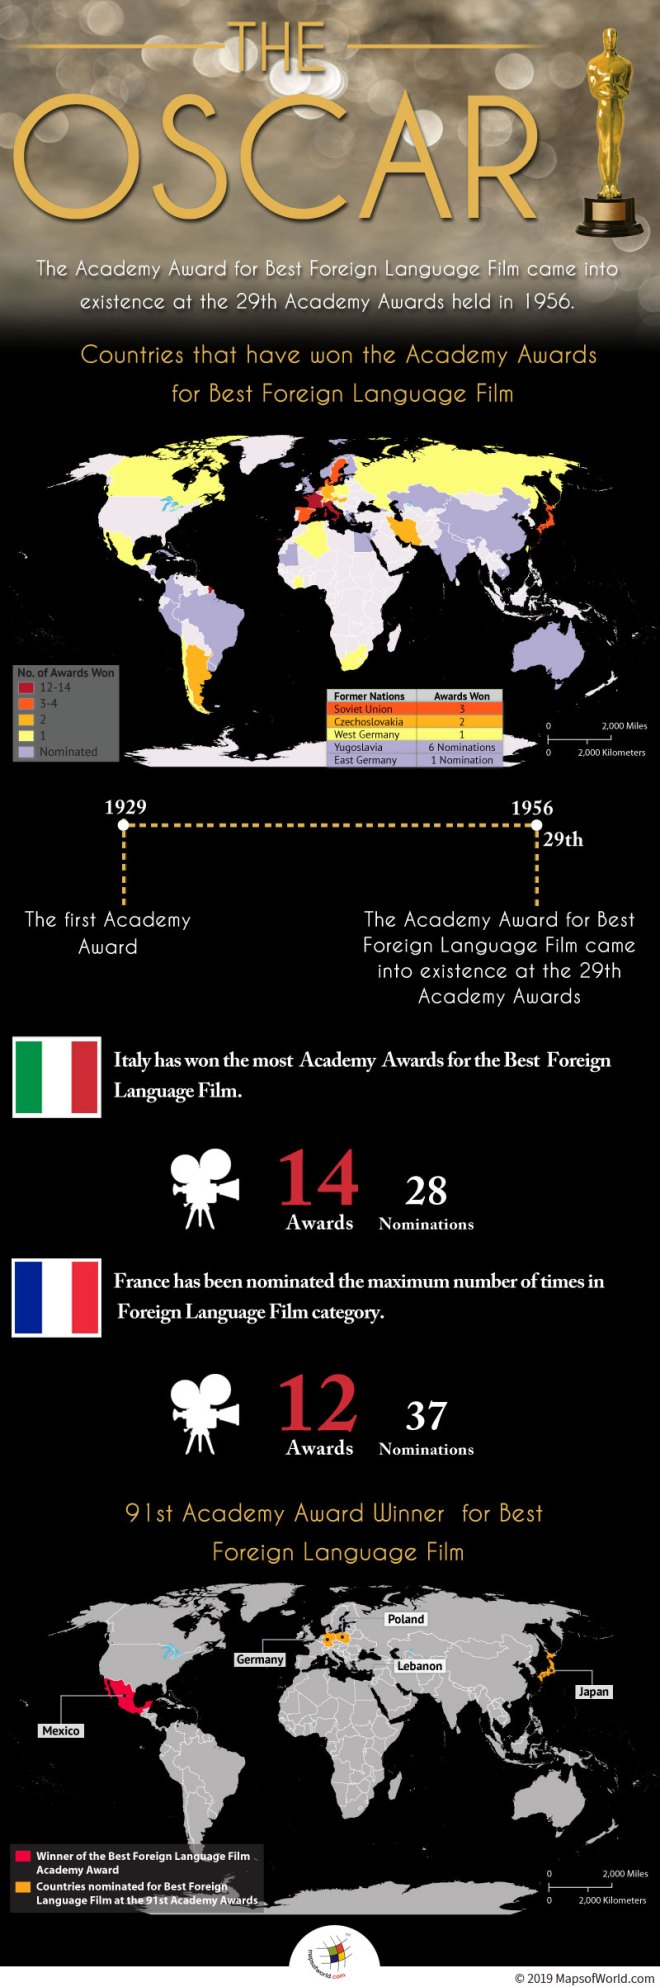 Infographic Showing Details of Academy Award Winning Countries for Best Foreign Language Film